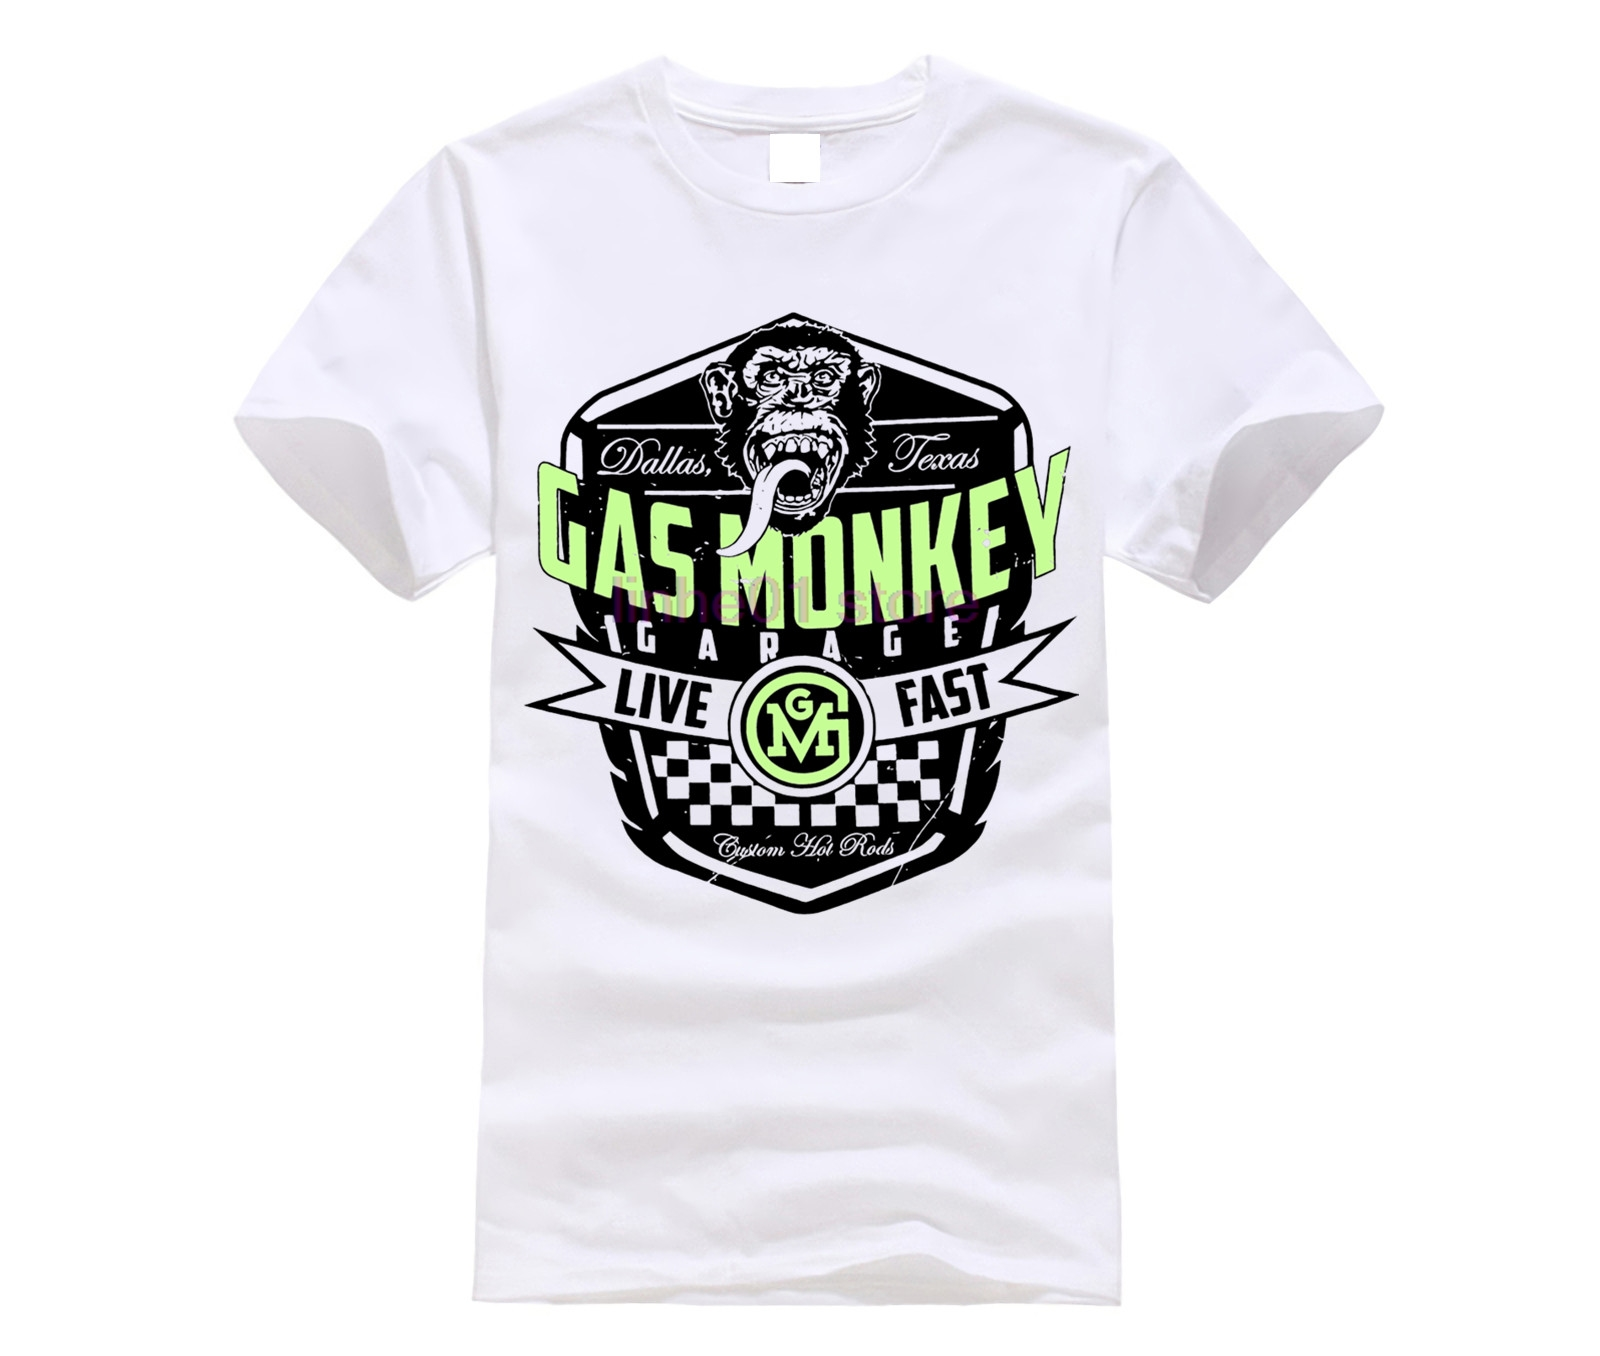 GILDAN 2019 NEW   shirt   GAS MEN   shirt   MONKEY Garage Live Fast Unisex Official   T     Shirt   Brand New Various Sizes TV F